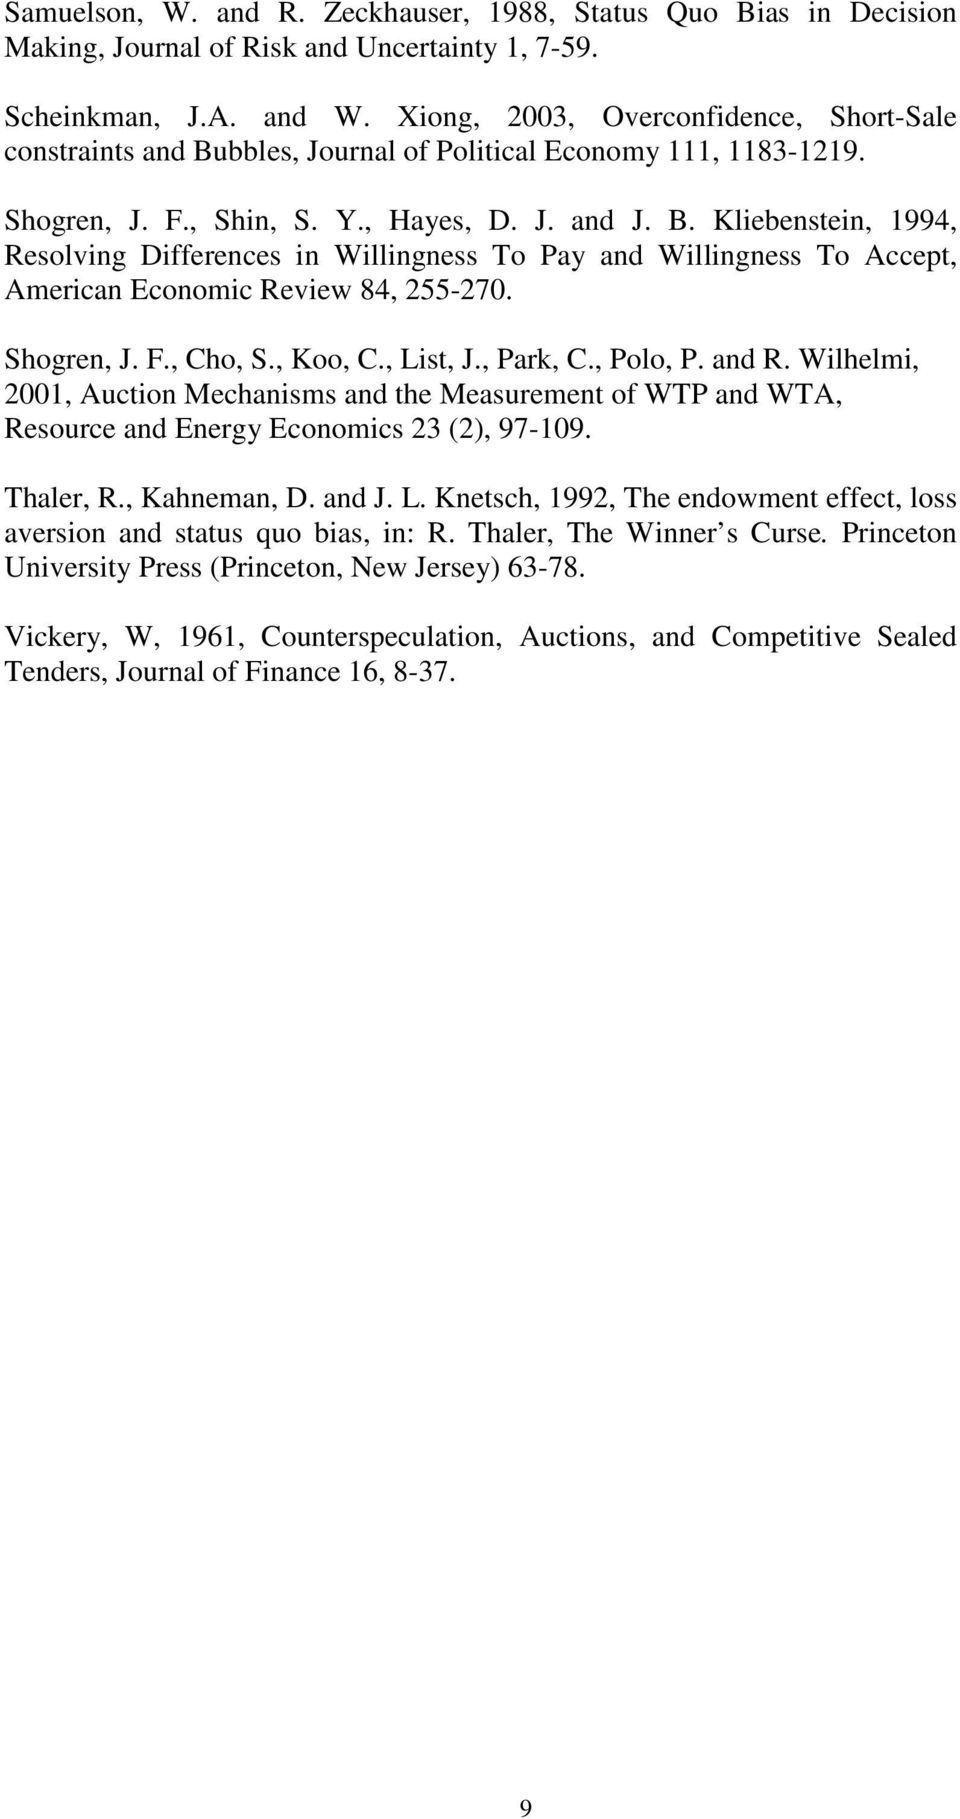 Shogren, J. F., Cho, S., Koo, C., List, J., Park, C., Polo, P. and R. Wilhelmi, 2001, Auction Mechanisms and the Measurement of WTP and WTA, Resource and Energy Economics 23 (2), 97-109. Thaler, R.